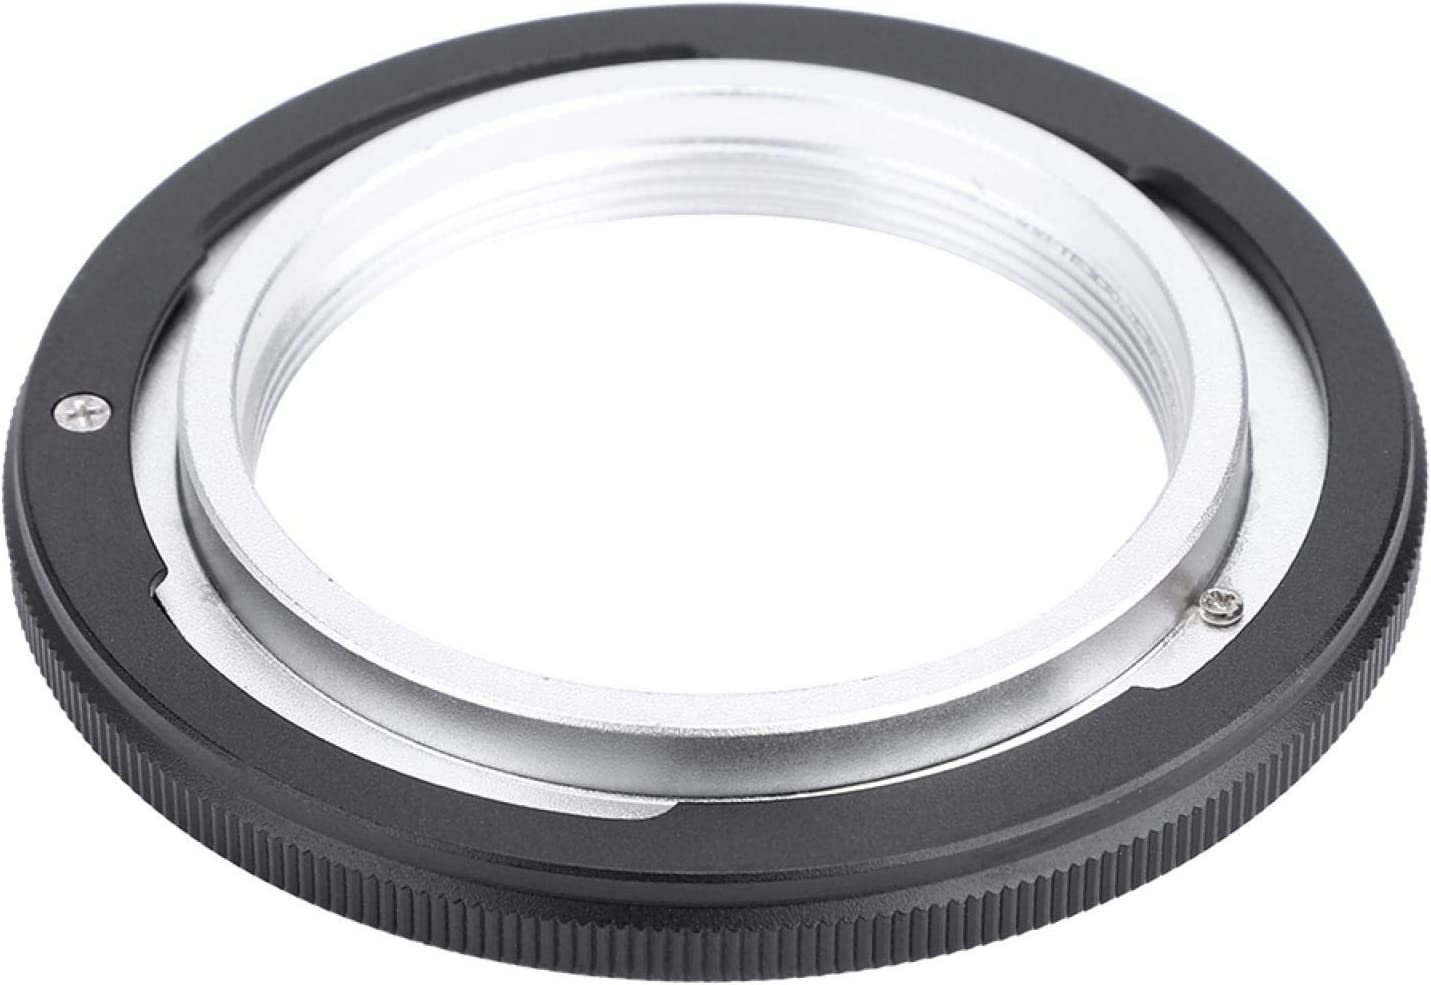 FKMYS Lens Adapter,Screw Camera Film Our shop OFFers the best service Adapter,for NEW before selling